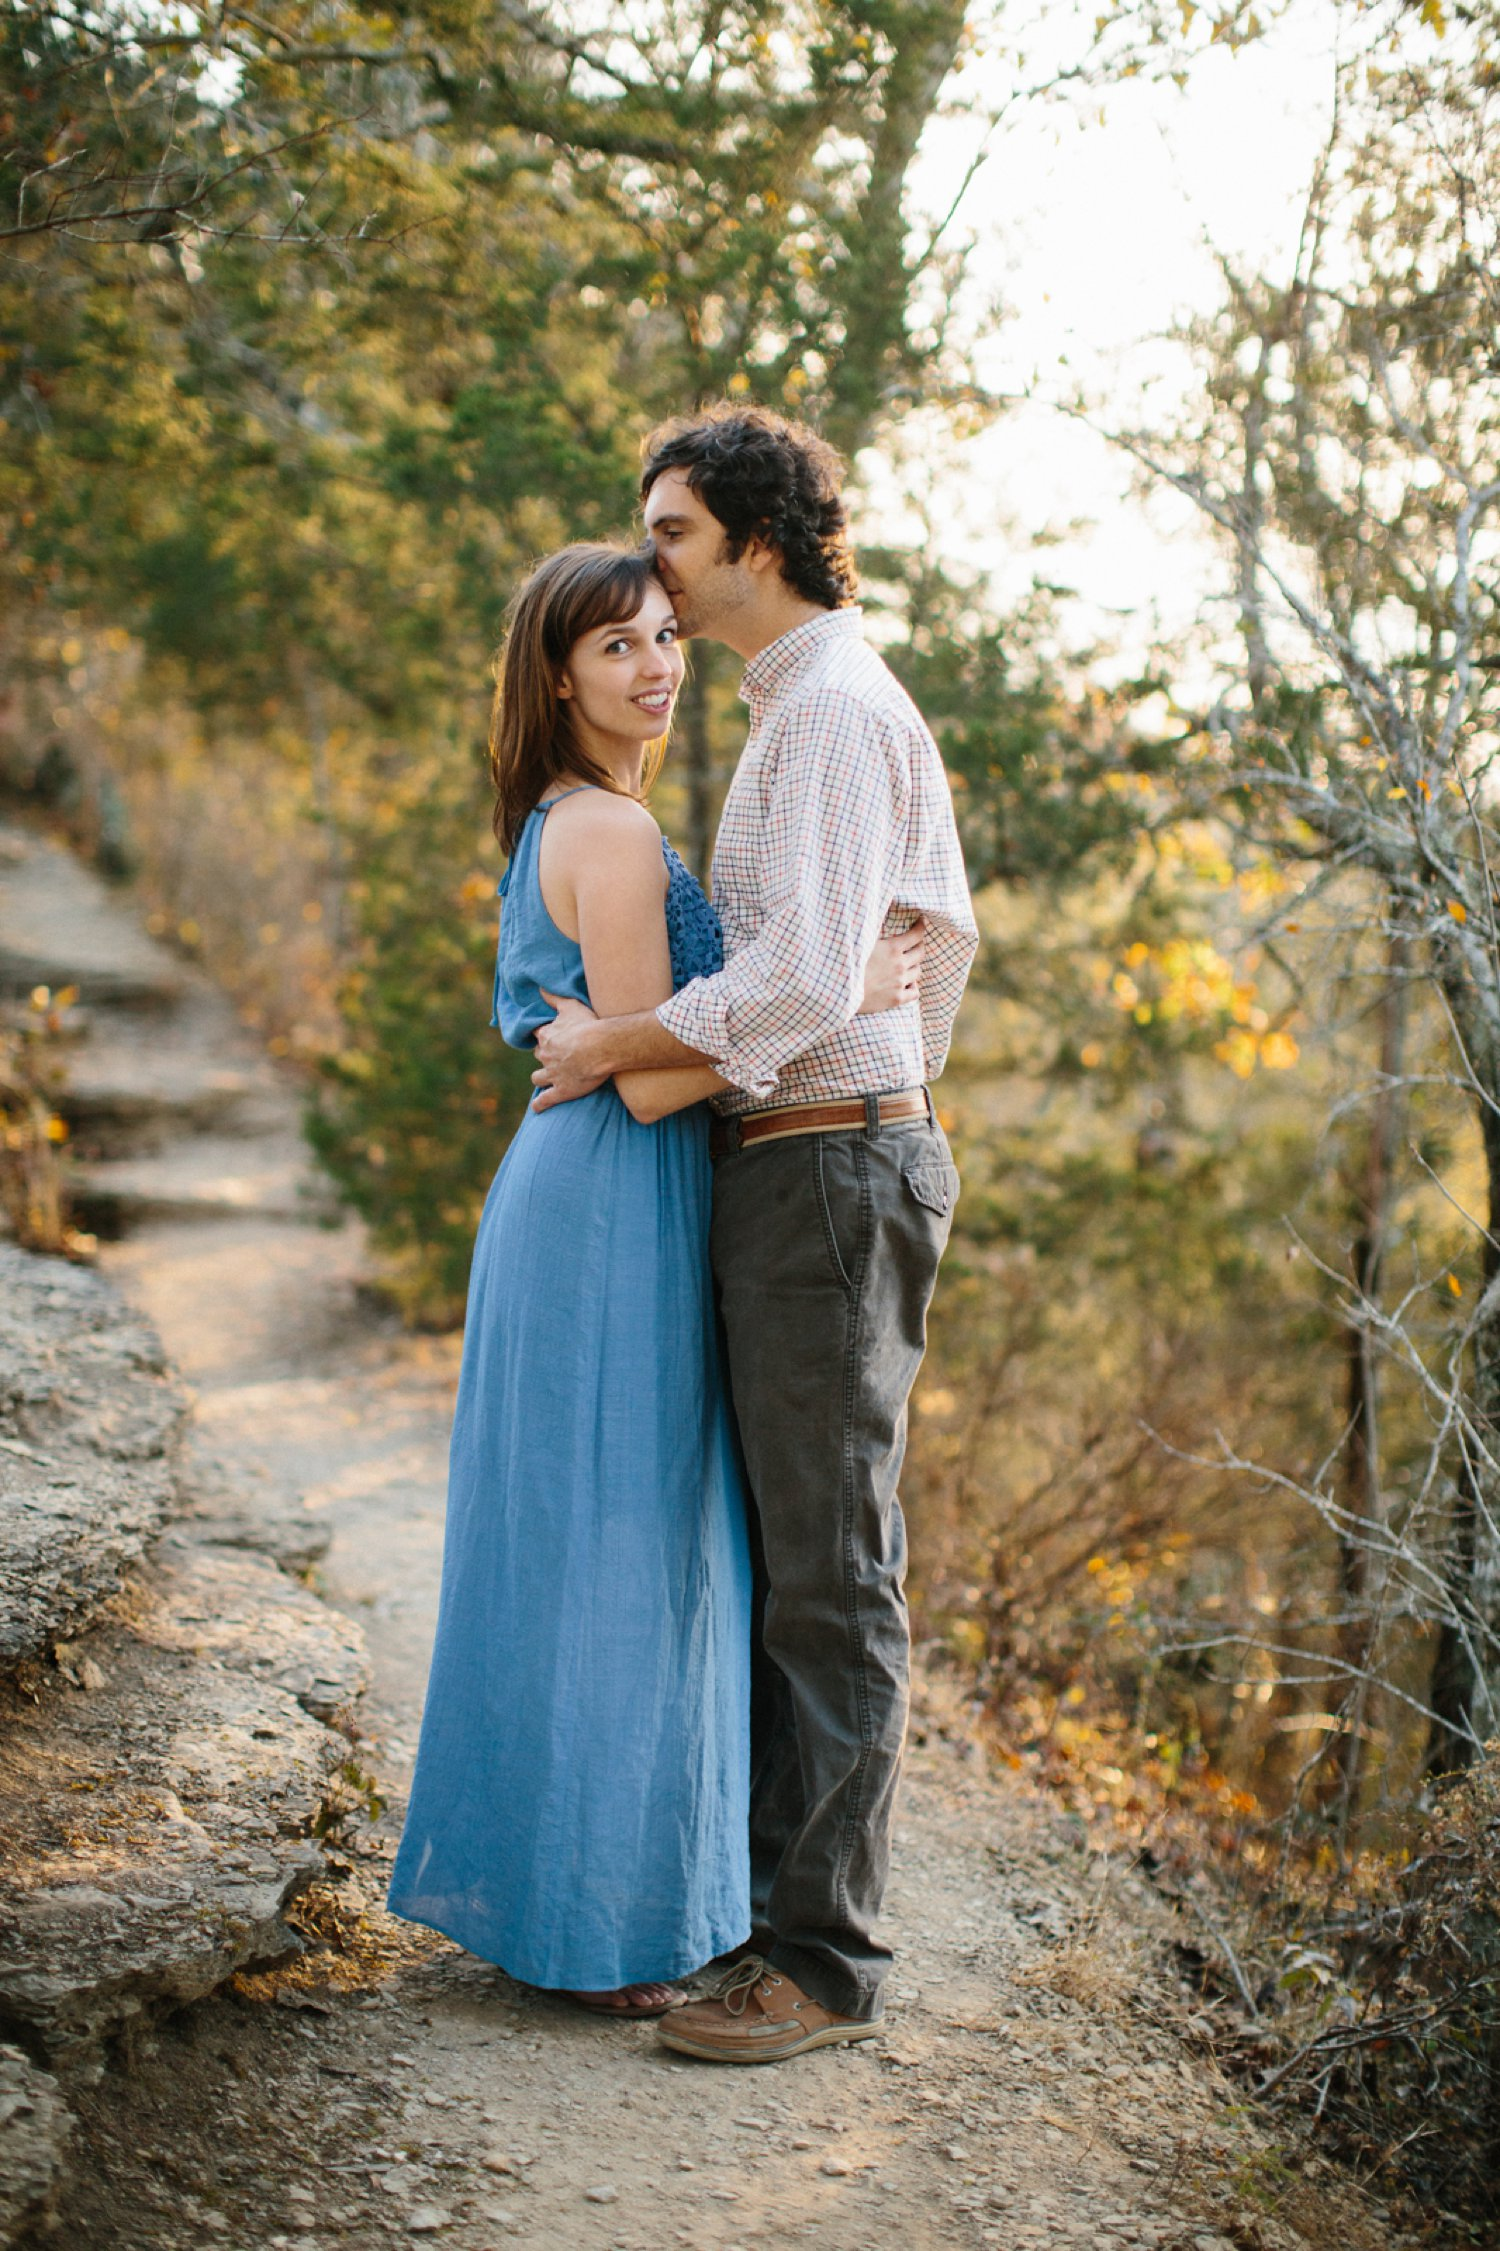 CSP-Lauren-Eric-Engagement-107.jpg